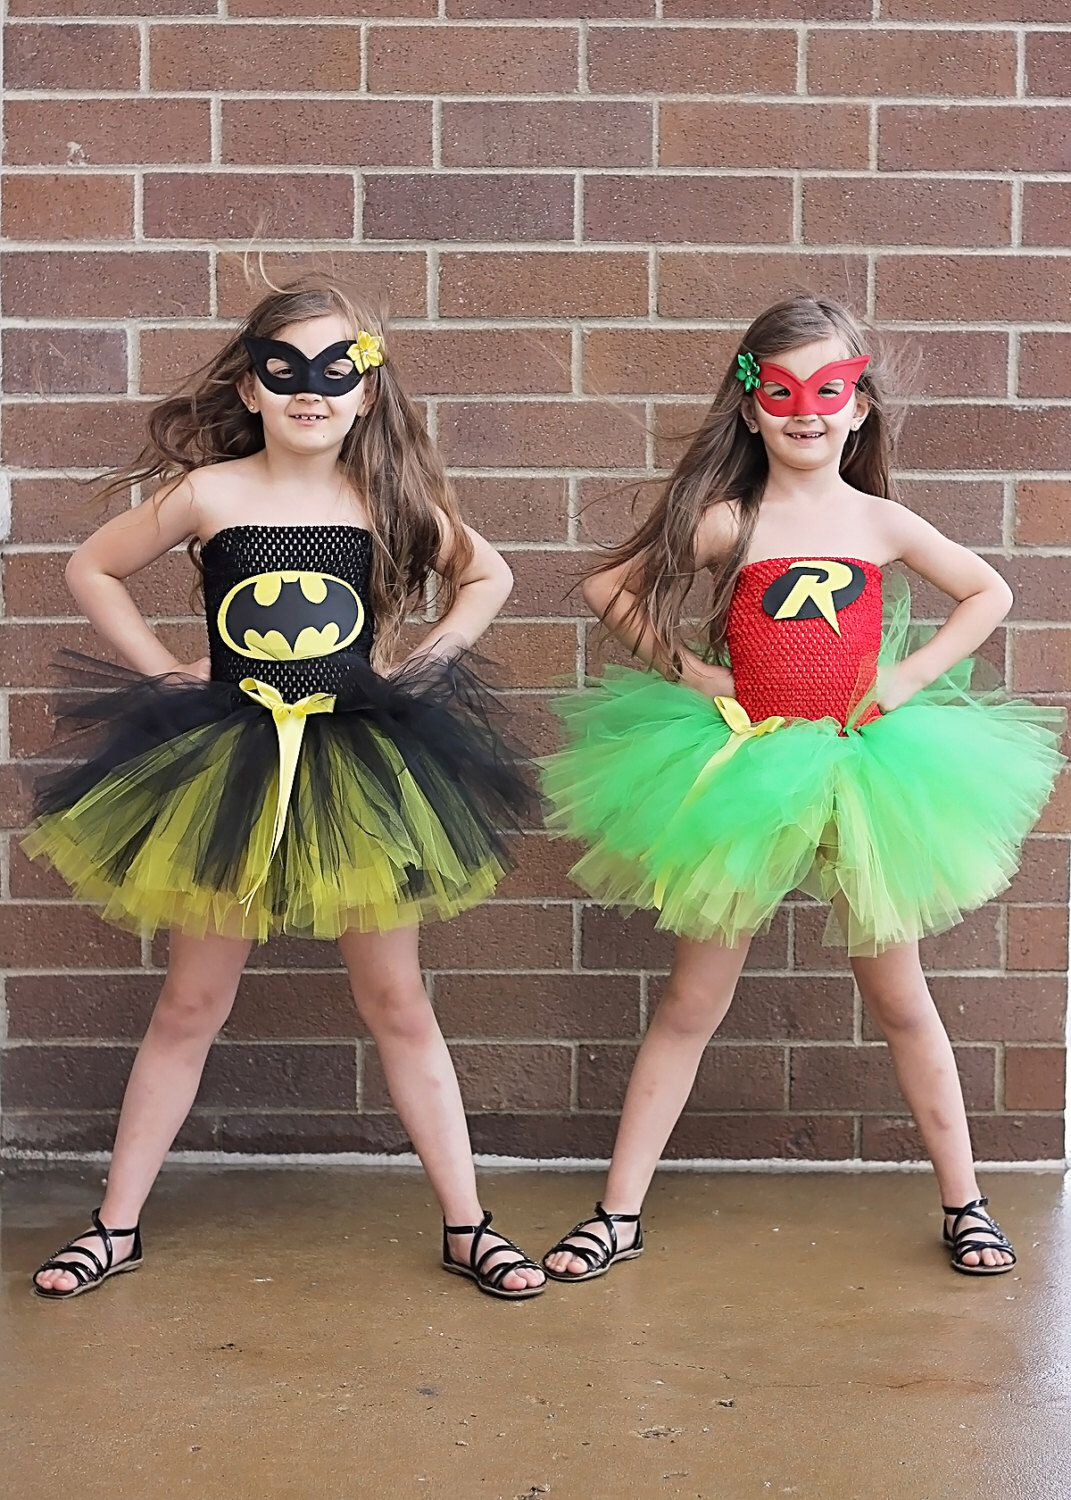 Robyn superhero tutu dress and costume | Tutu dresses, Superhero ...